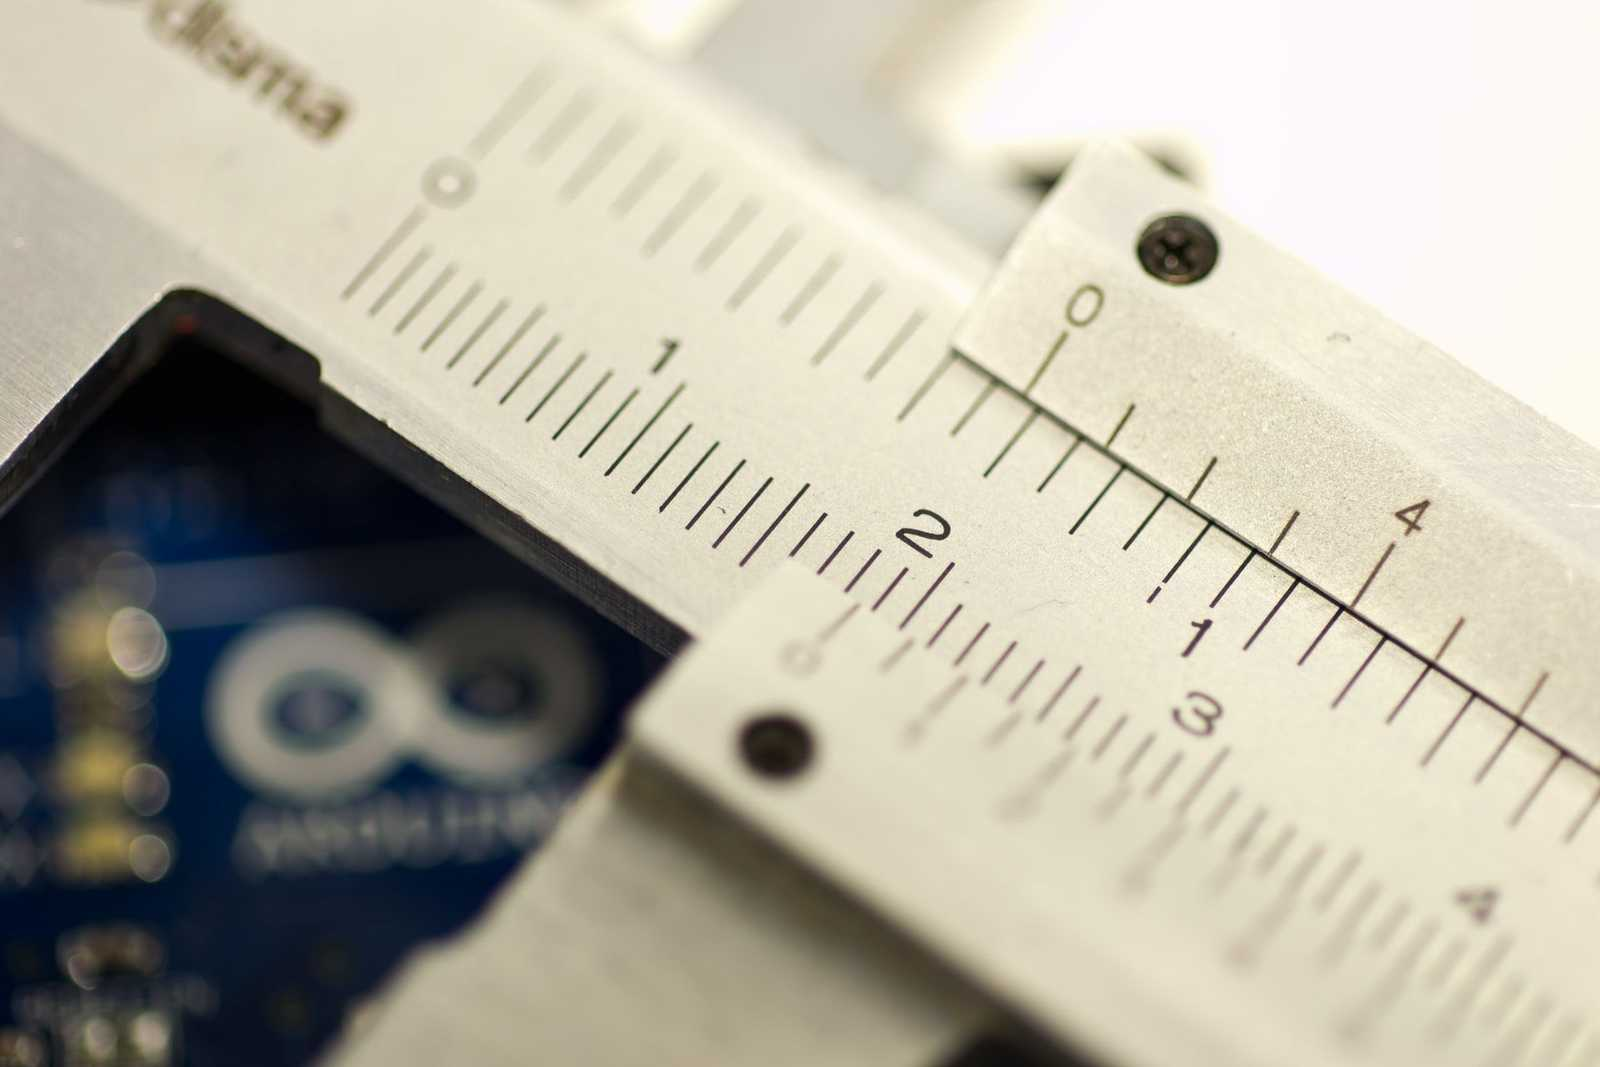 zoomed in view of silver analog calipers with a blue circuit board in background